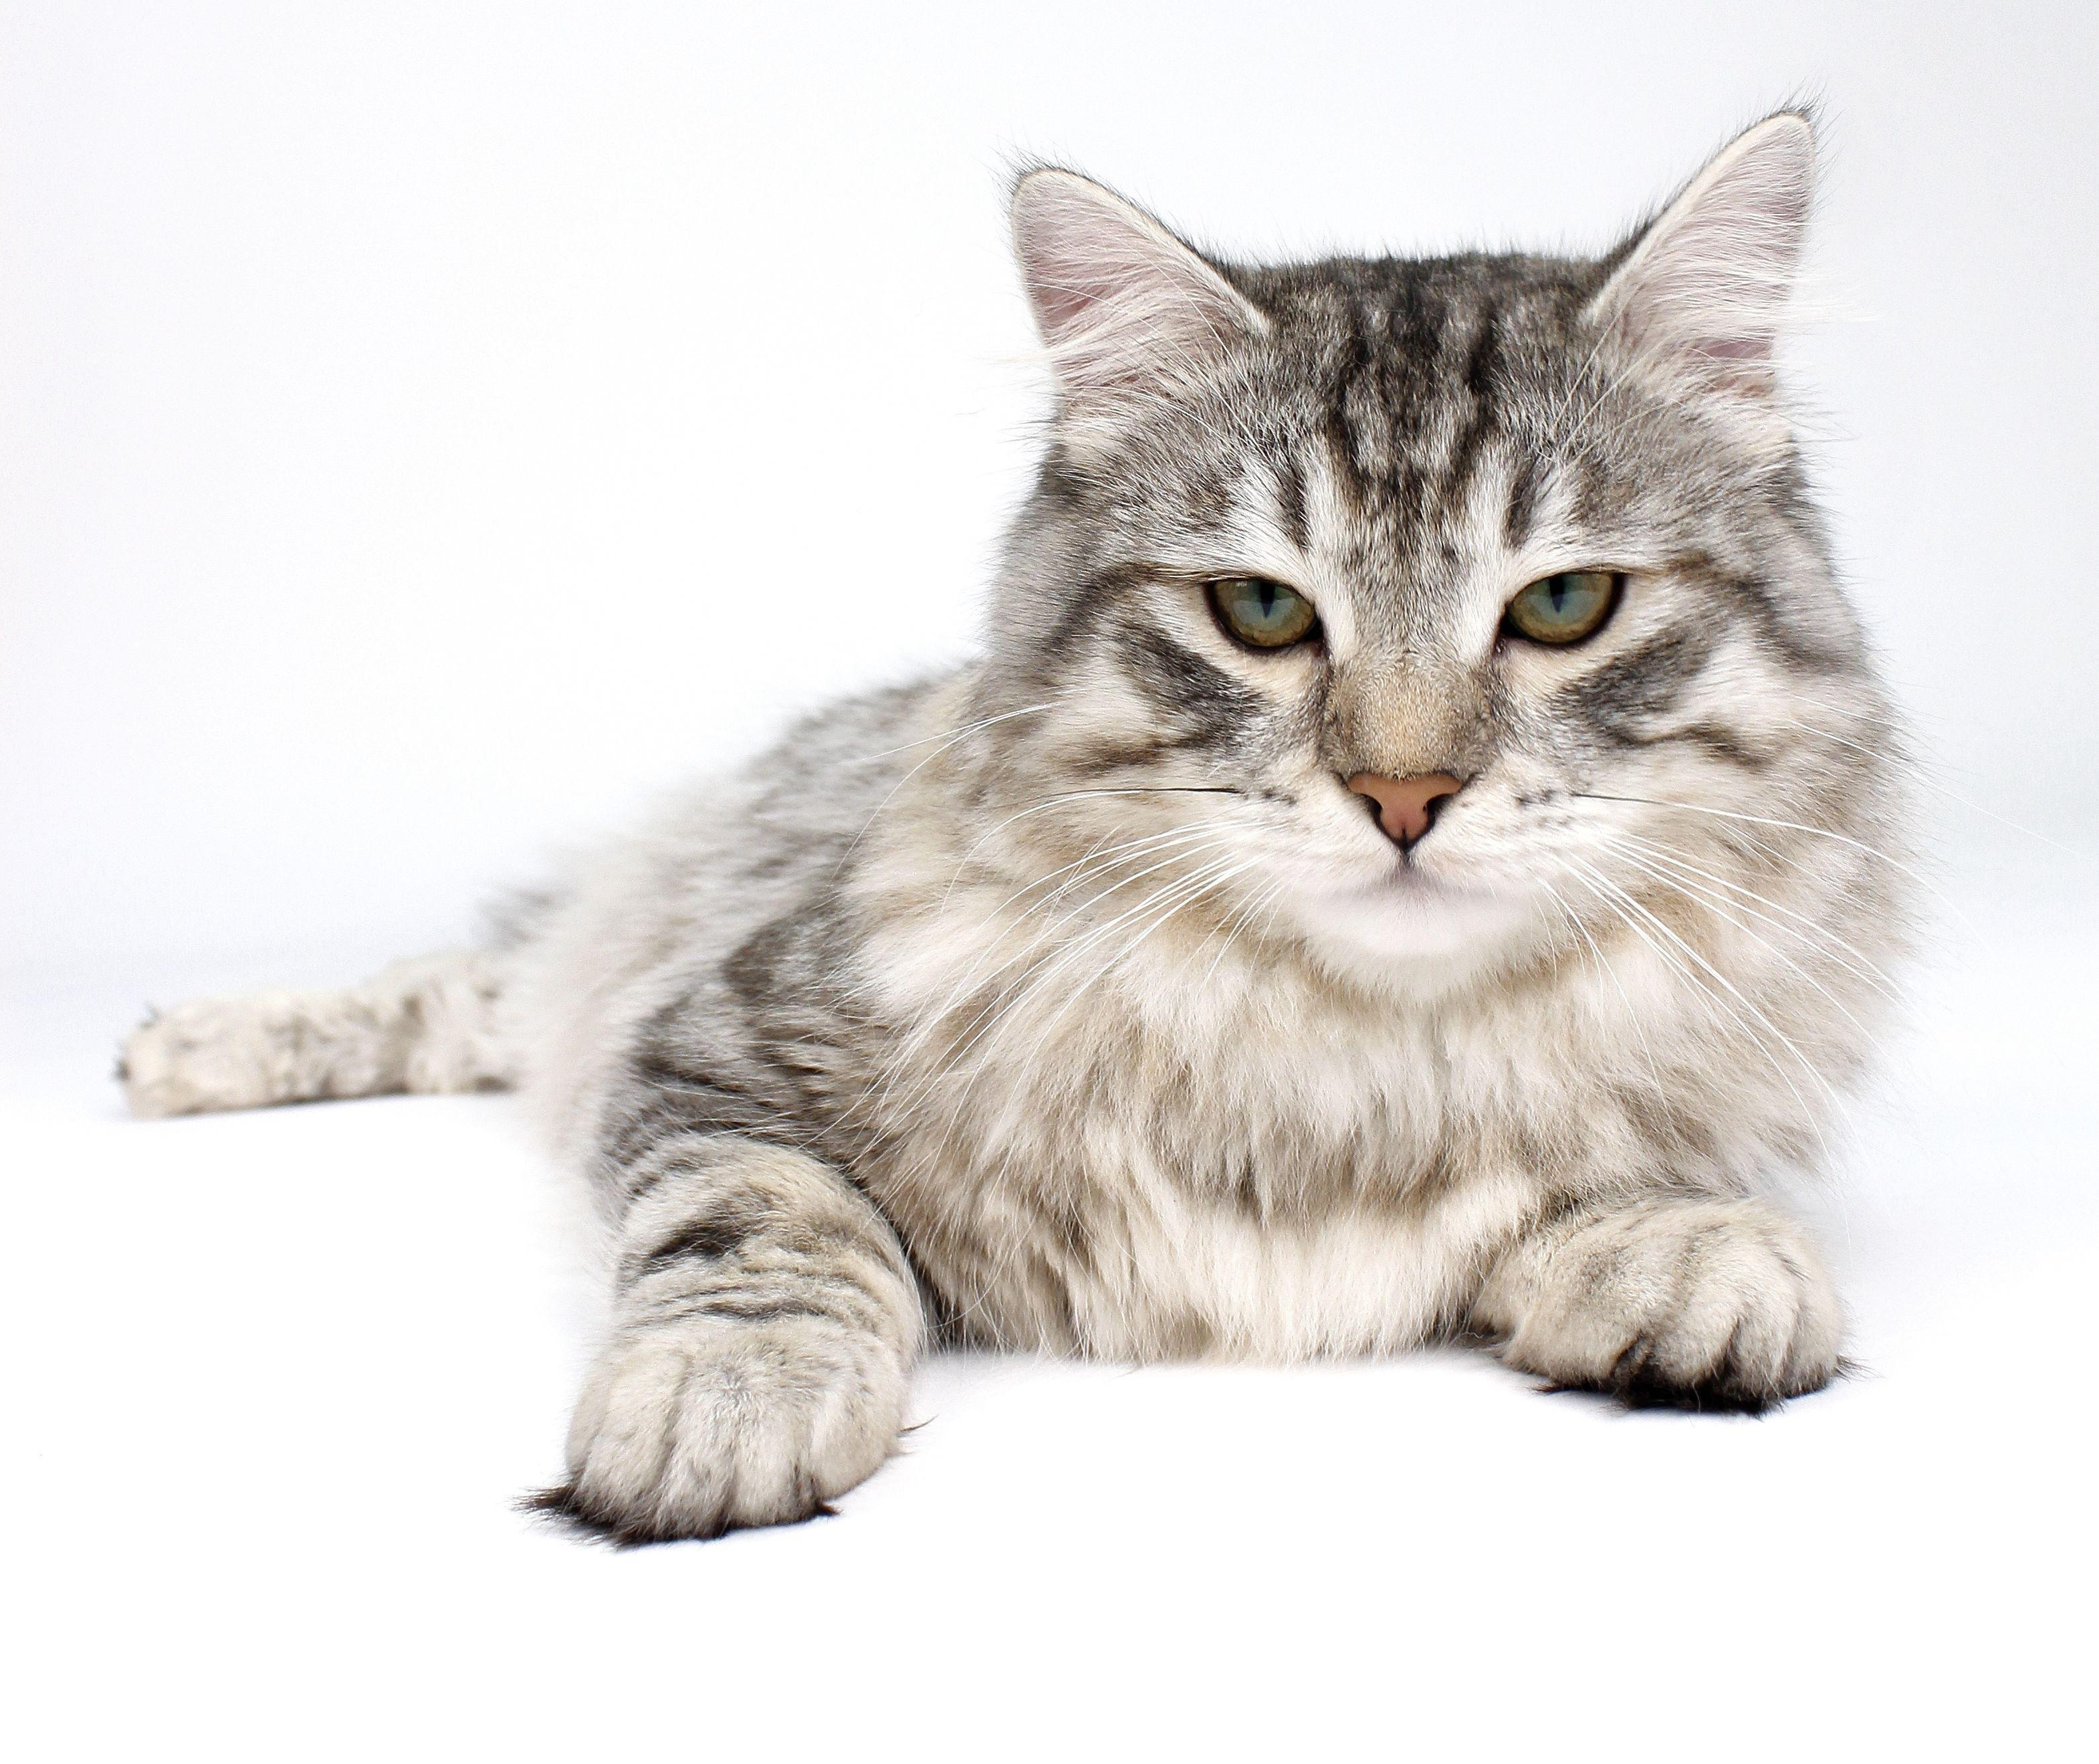 Feline Diabetes: Five Principles Breed Success